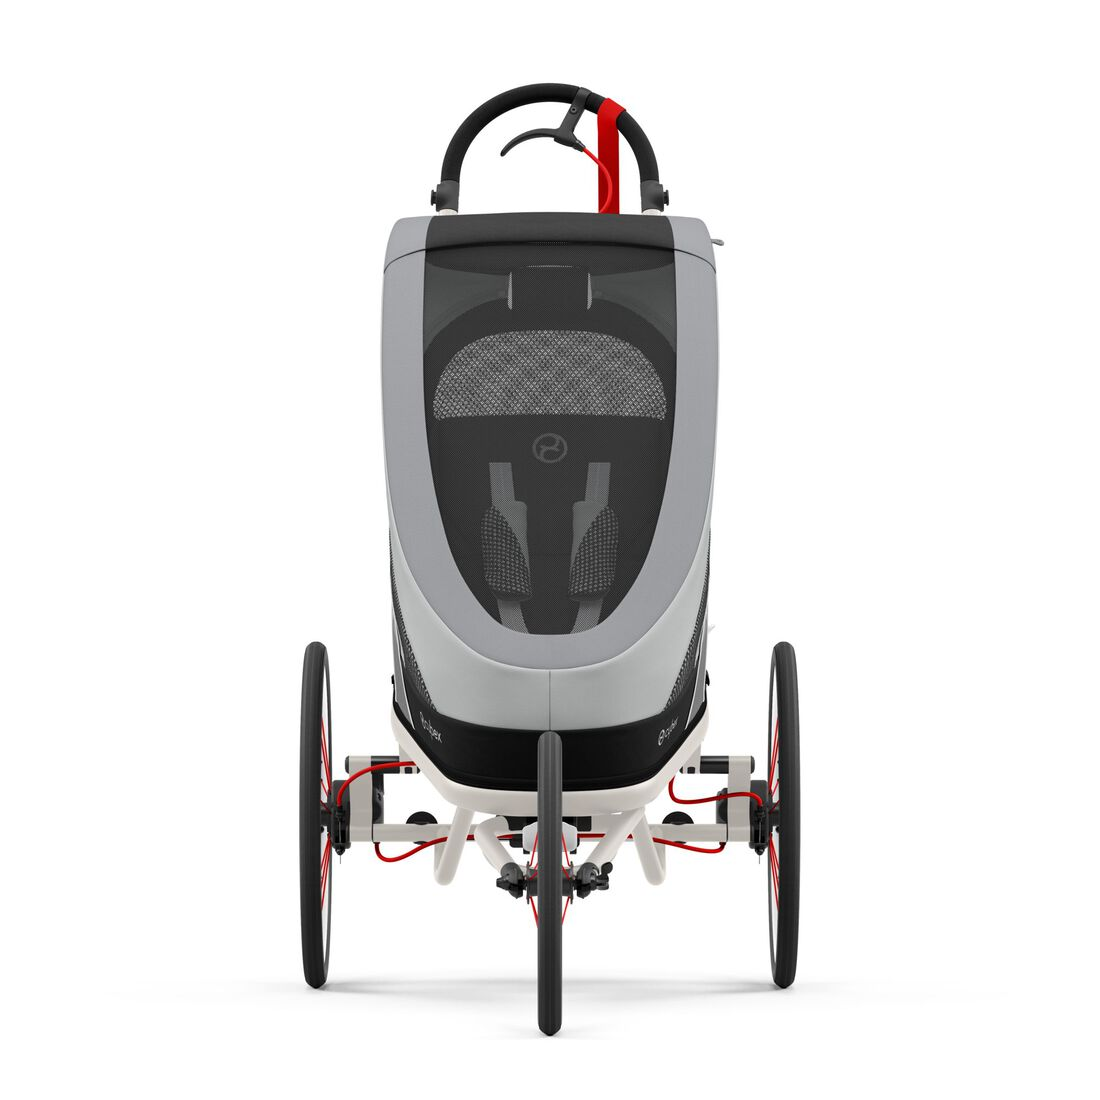 CYBEX Zeno Seat Pack - Medal Grey in Medal Grey large image number 3